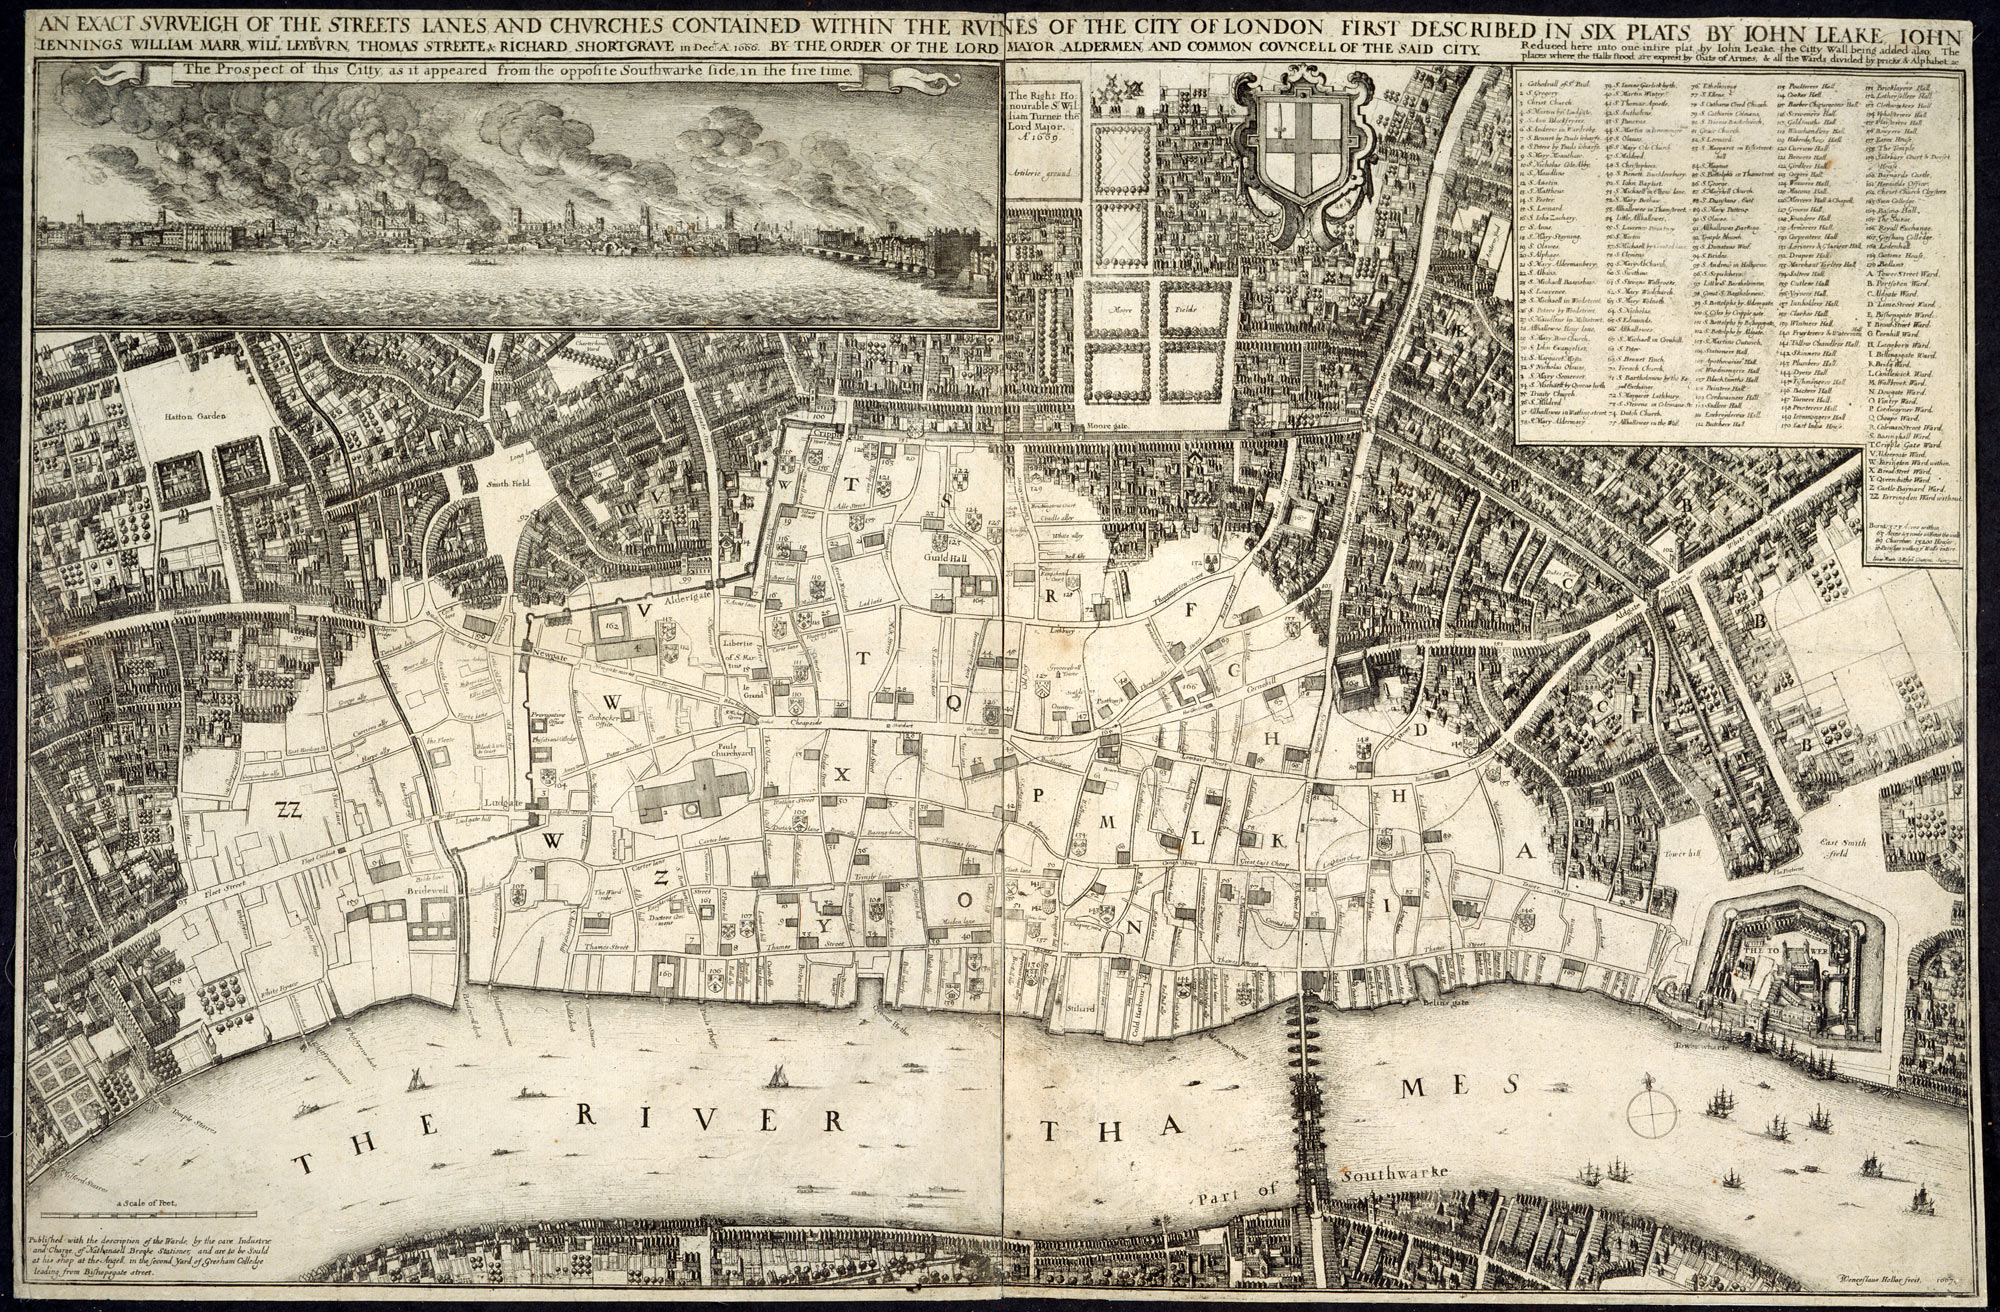 Survey of the ruins of the Great fire of London